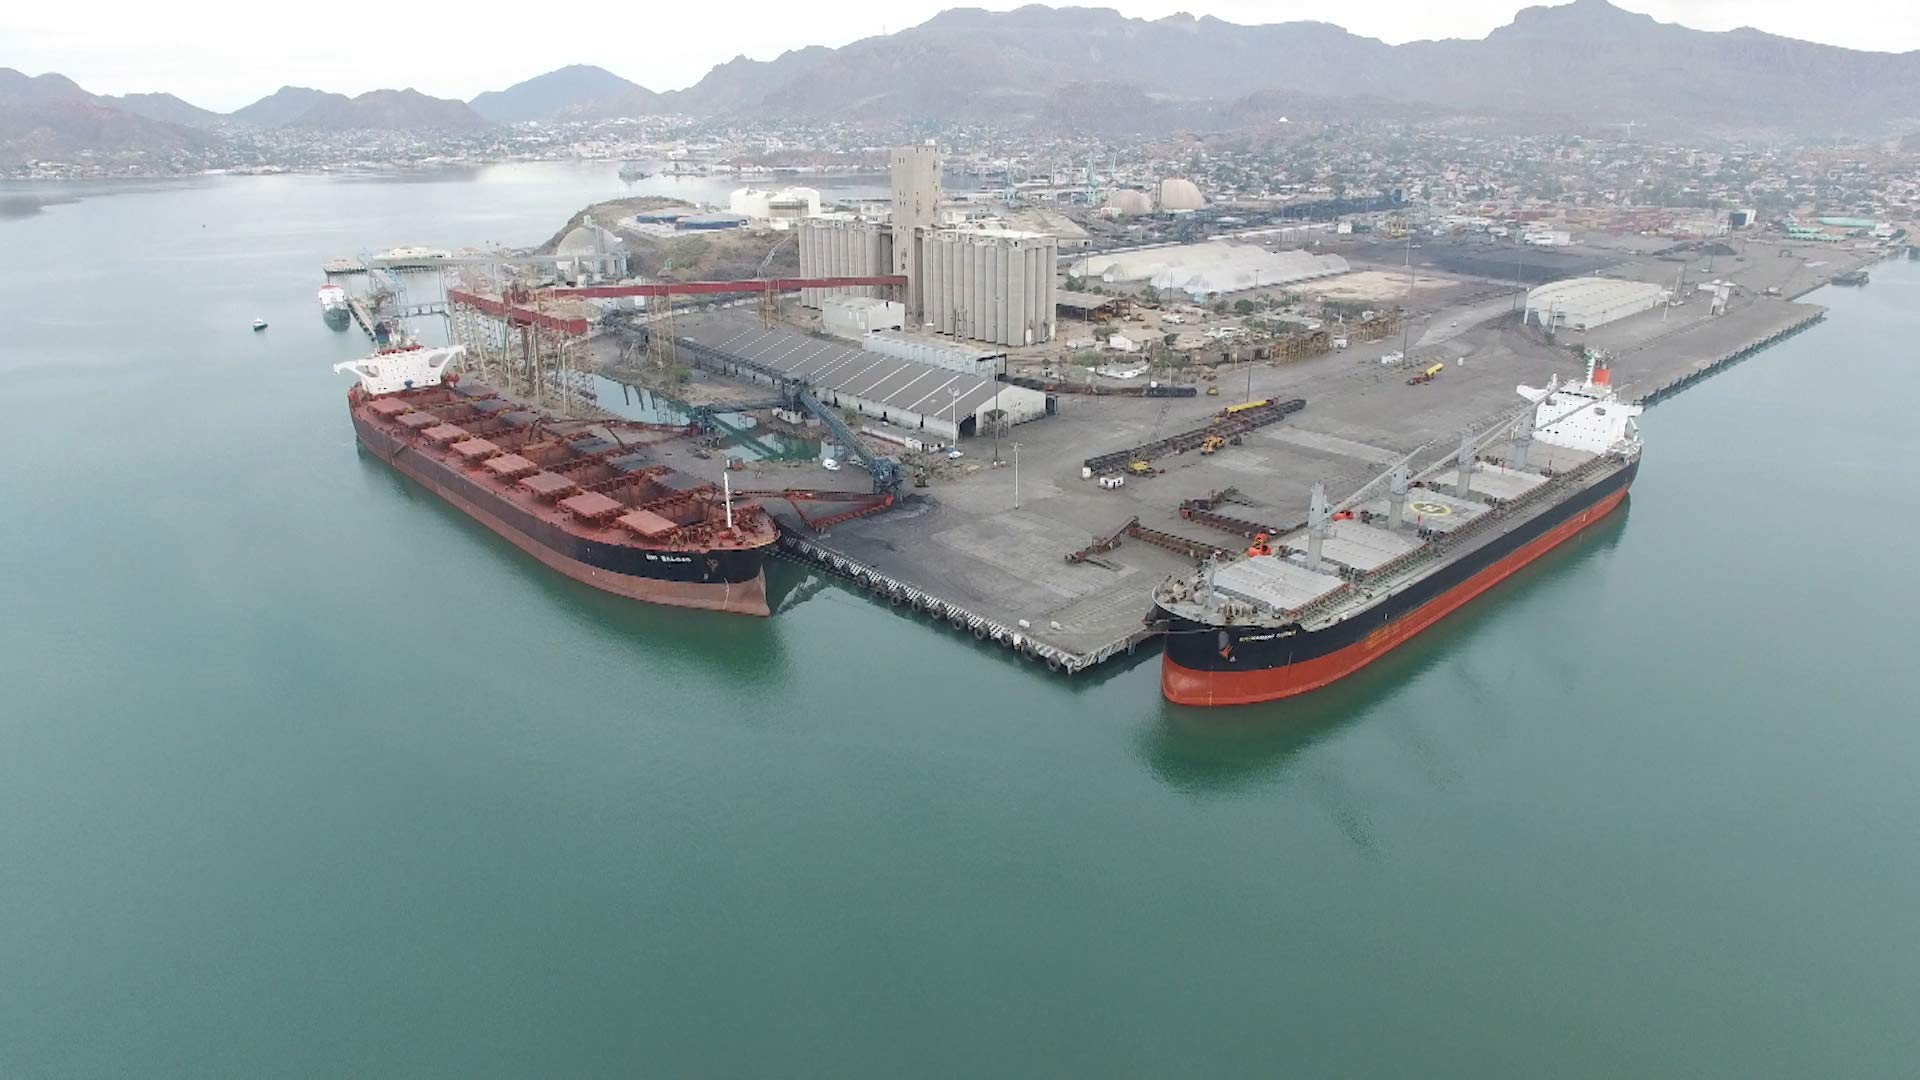 Guaymas port hero